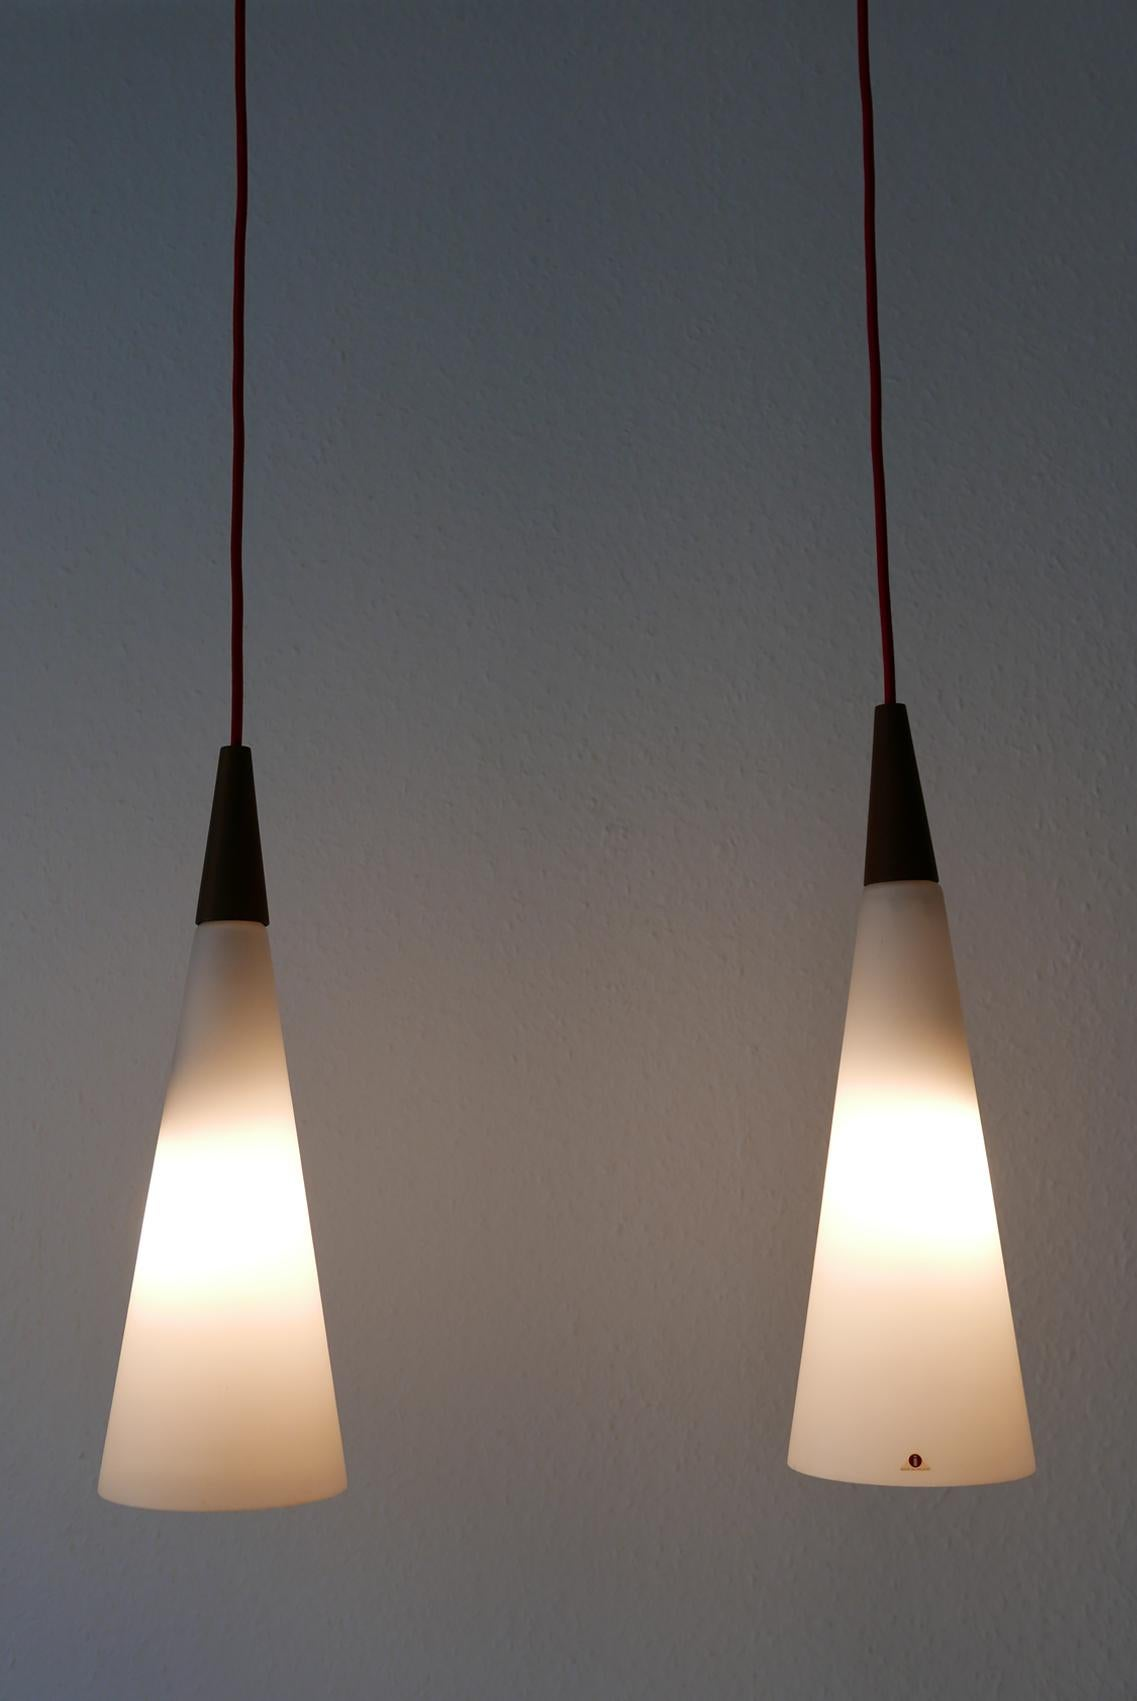 Ceiling Pendant Lights Set Of Two Mid Century Modern Pendant Lamps By Iittala Finland 1960s